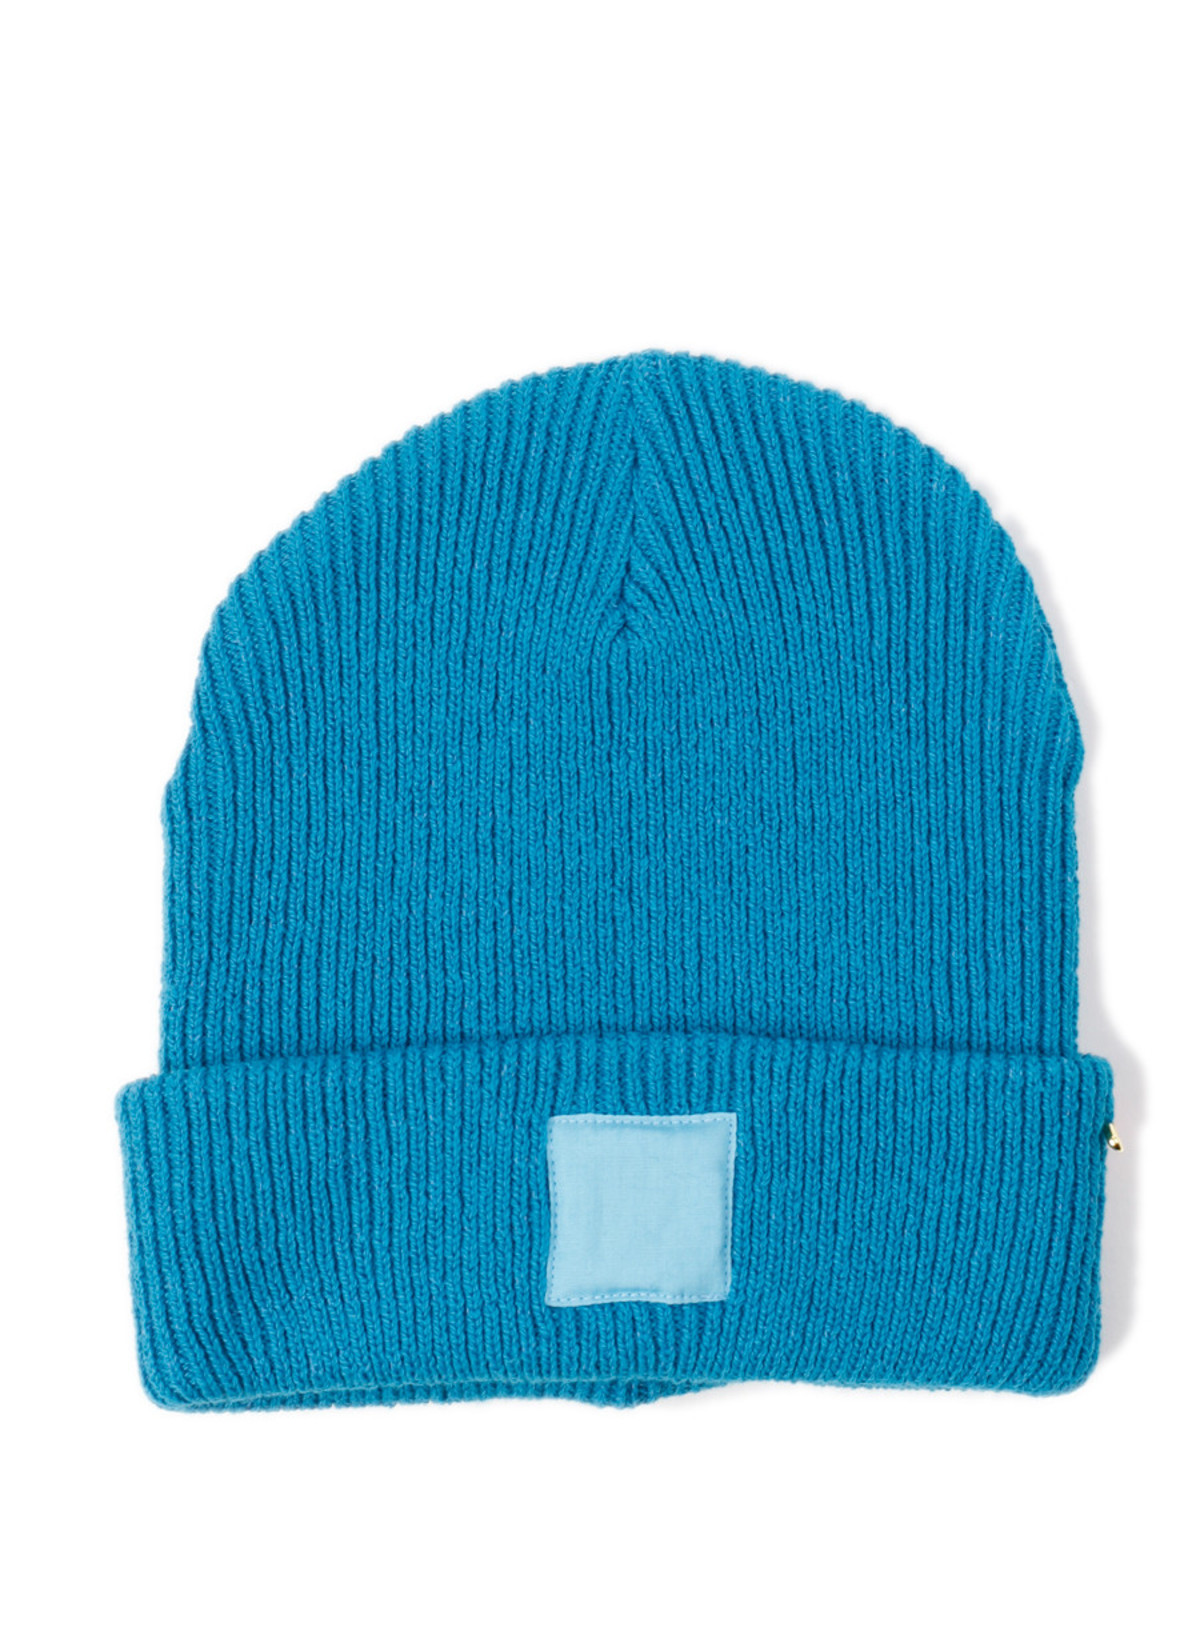 Blue Blue Japan Unisex Recycled Cotton Patched Knit Cap